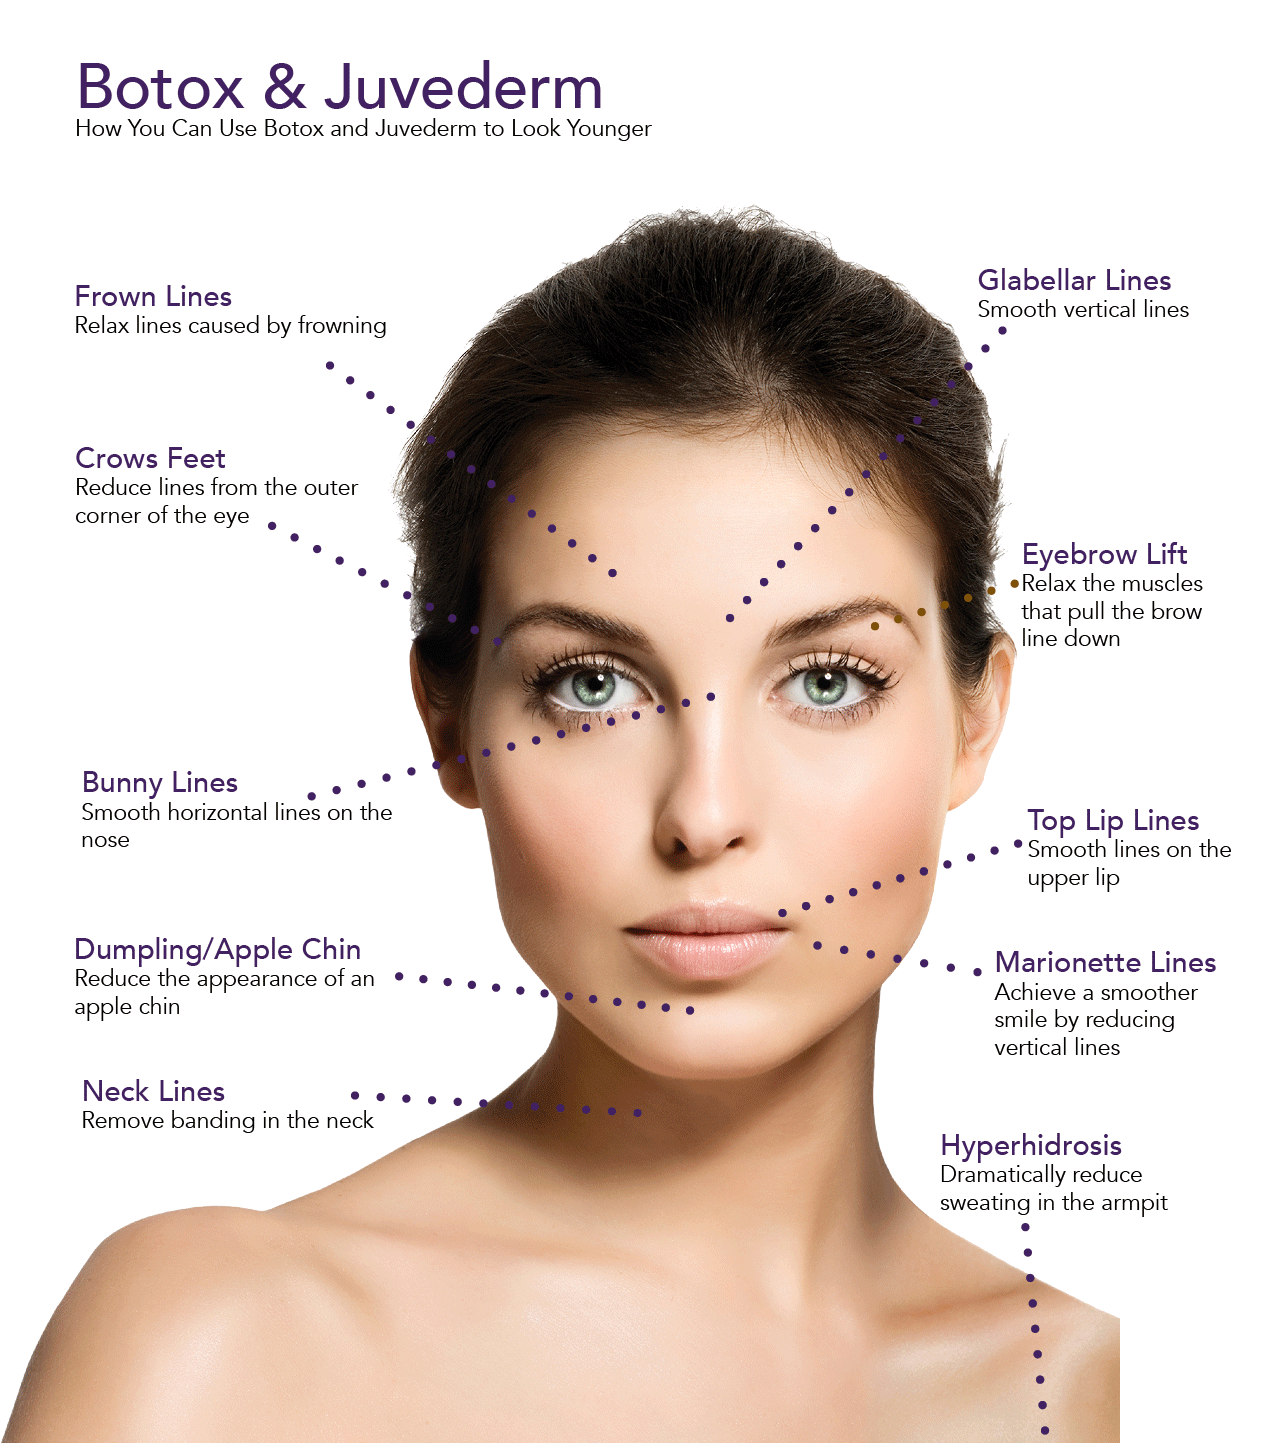 acne face diagram john deere lawn tractor ignition switch wiring botox juvederm of body skin